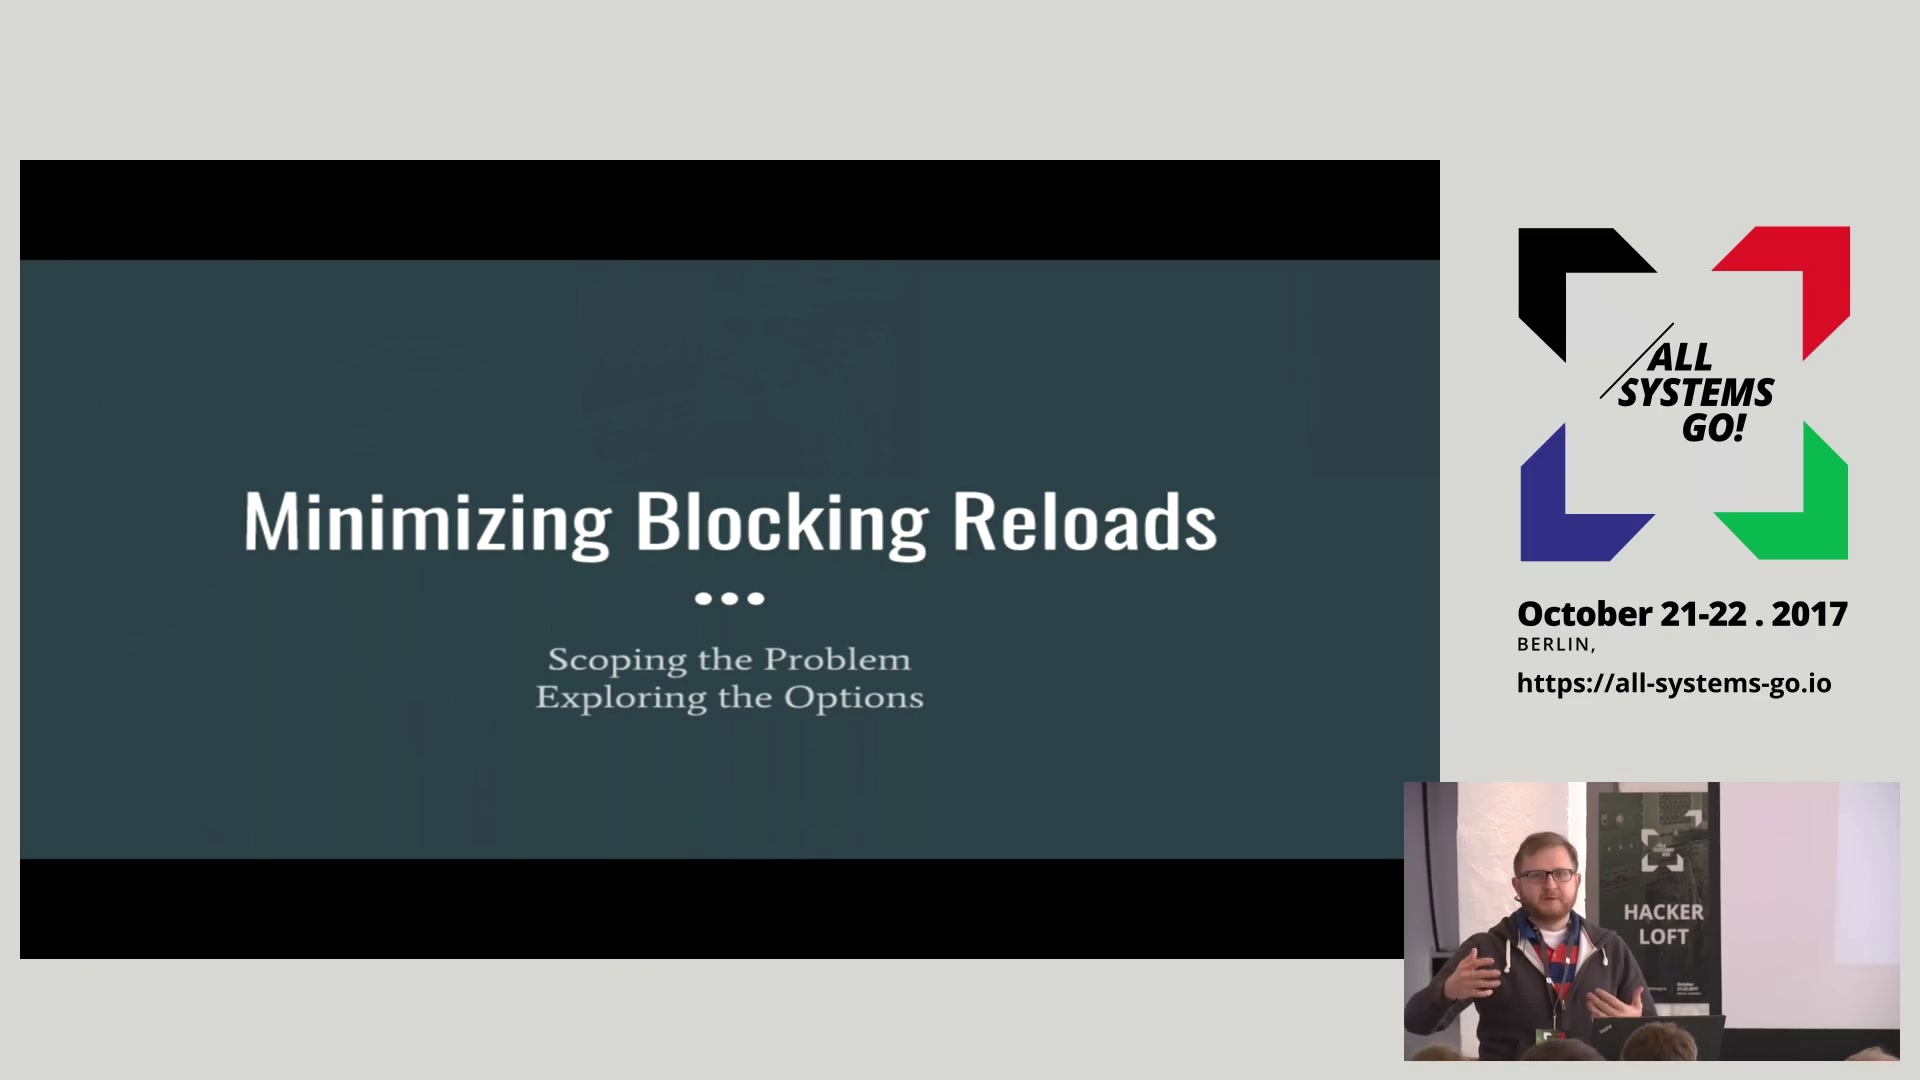 media ccc de - Unbreaking reloads: strategies for fast and